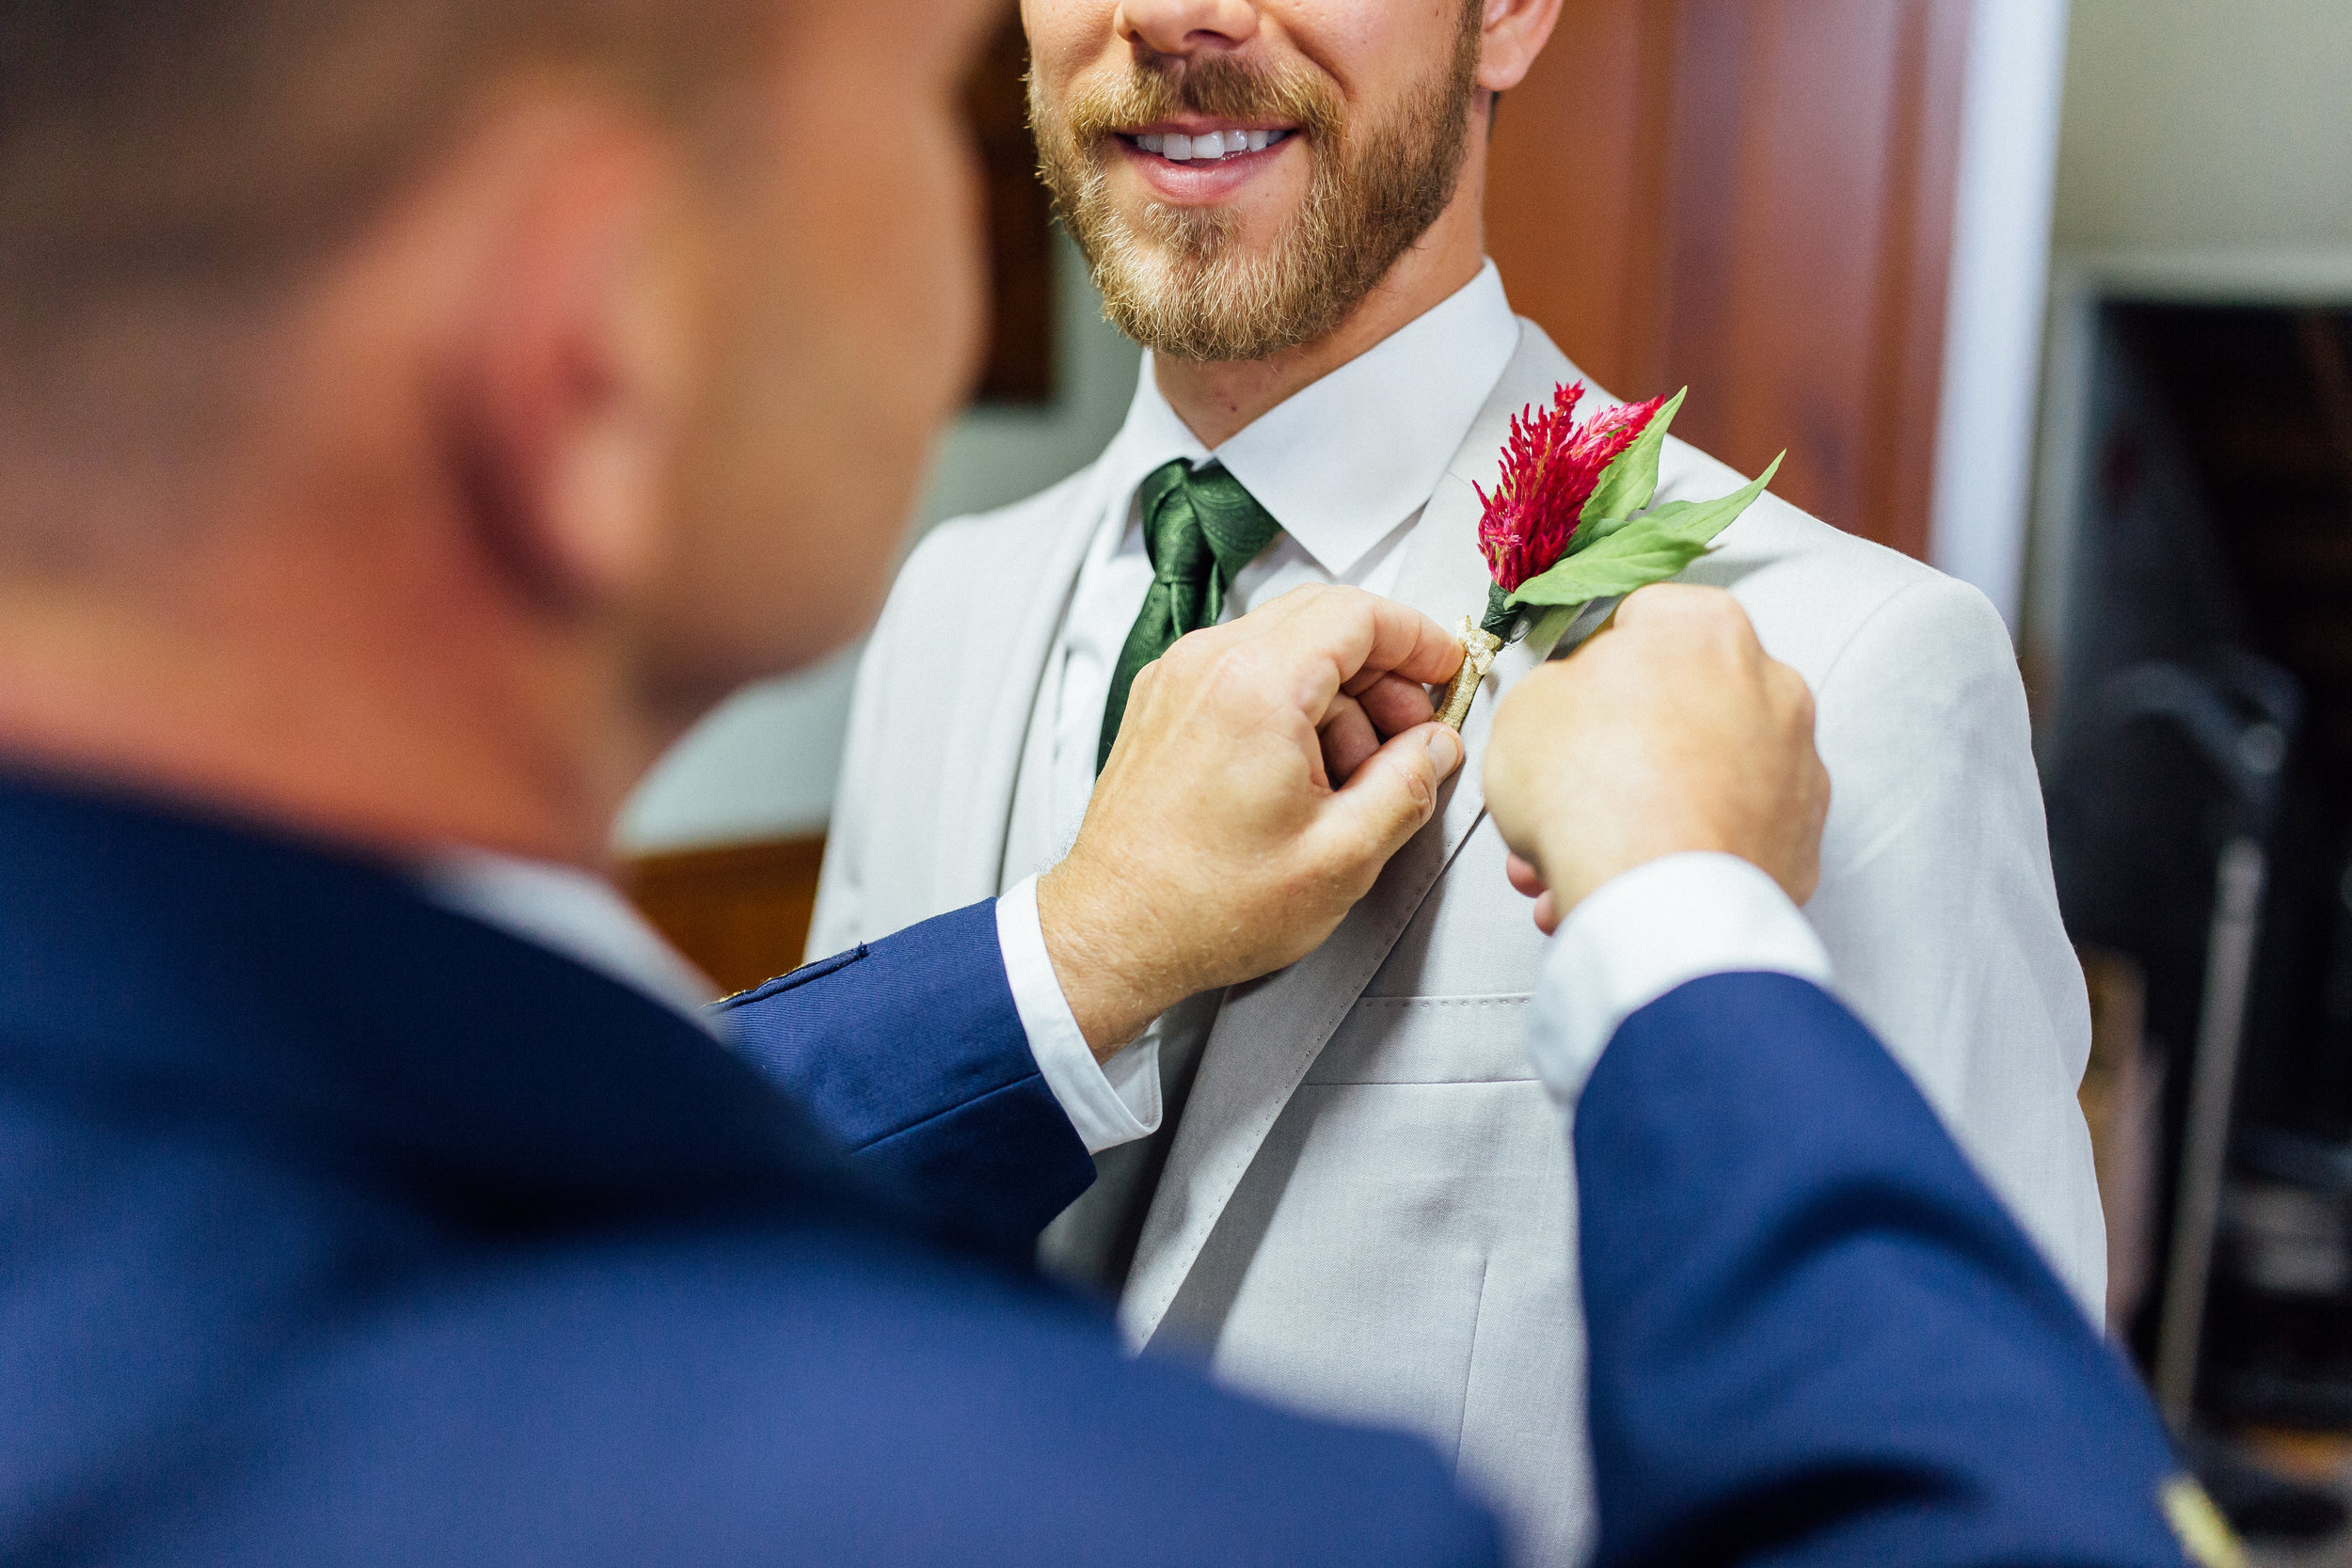 Groom's father putting on his boutonnière and smiling